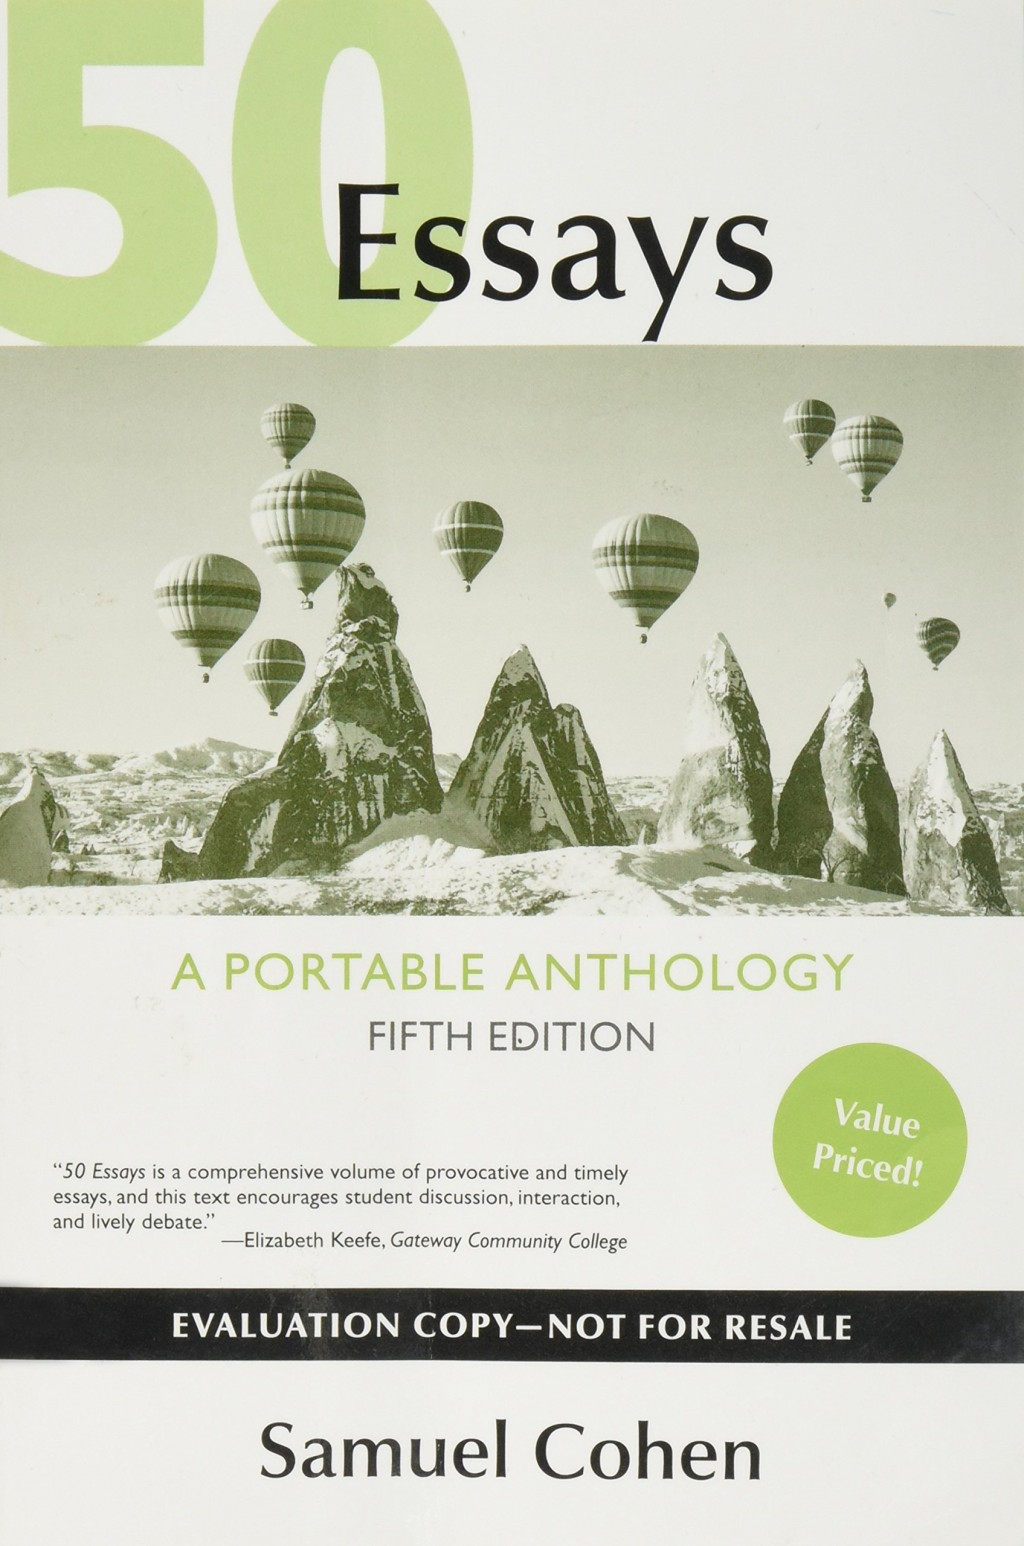 008 Essay Example 81lvlre8oll Essays 5th Imposing 50 Edition Fifty Great Pdf Free A Portable Anthology Ebook Large